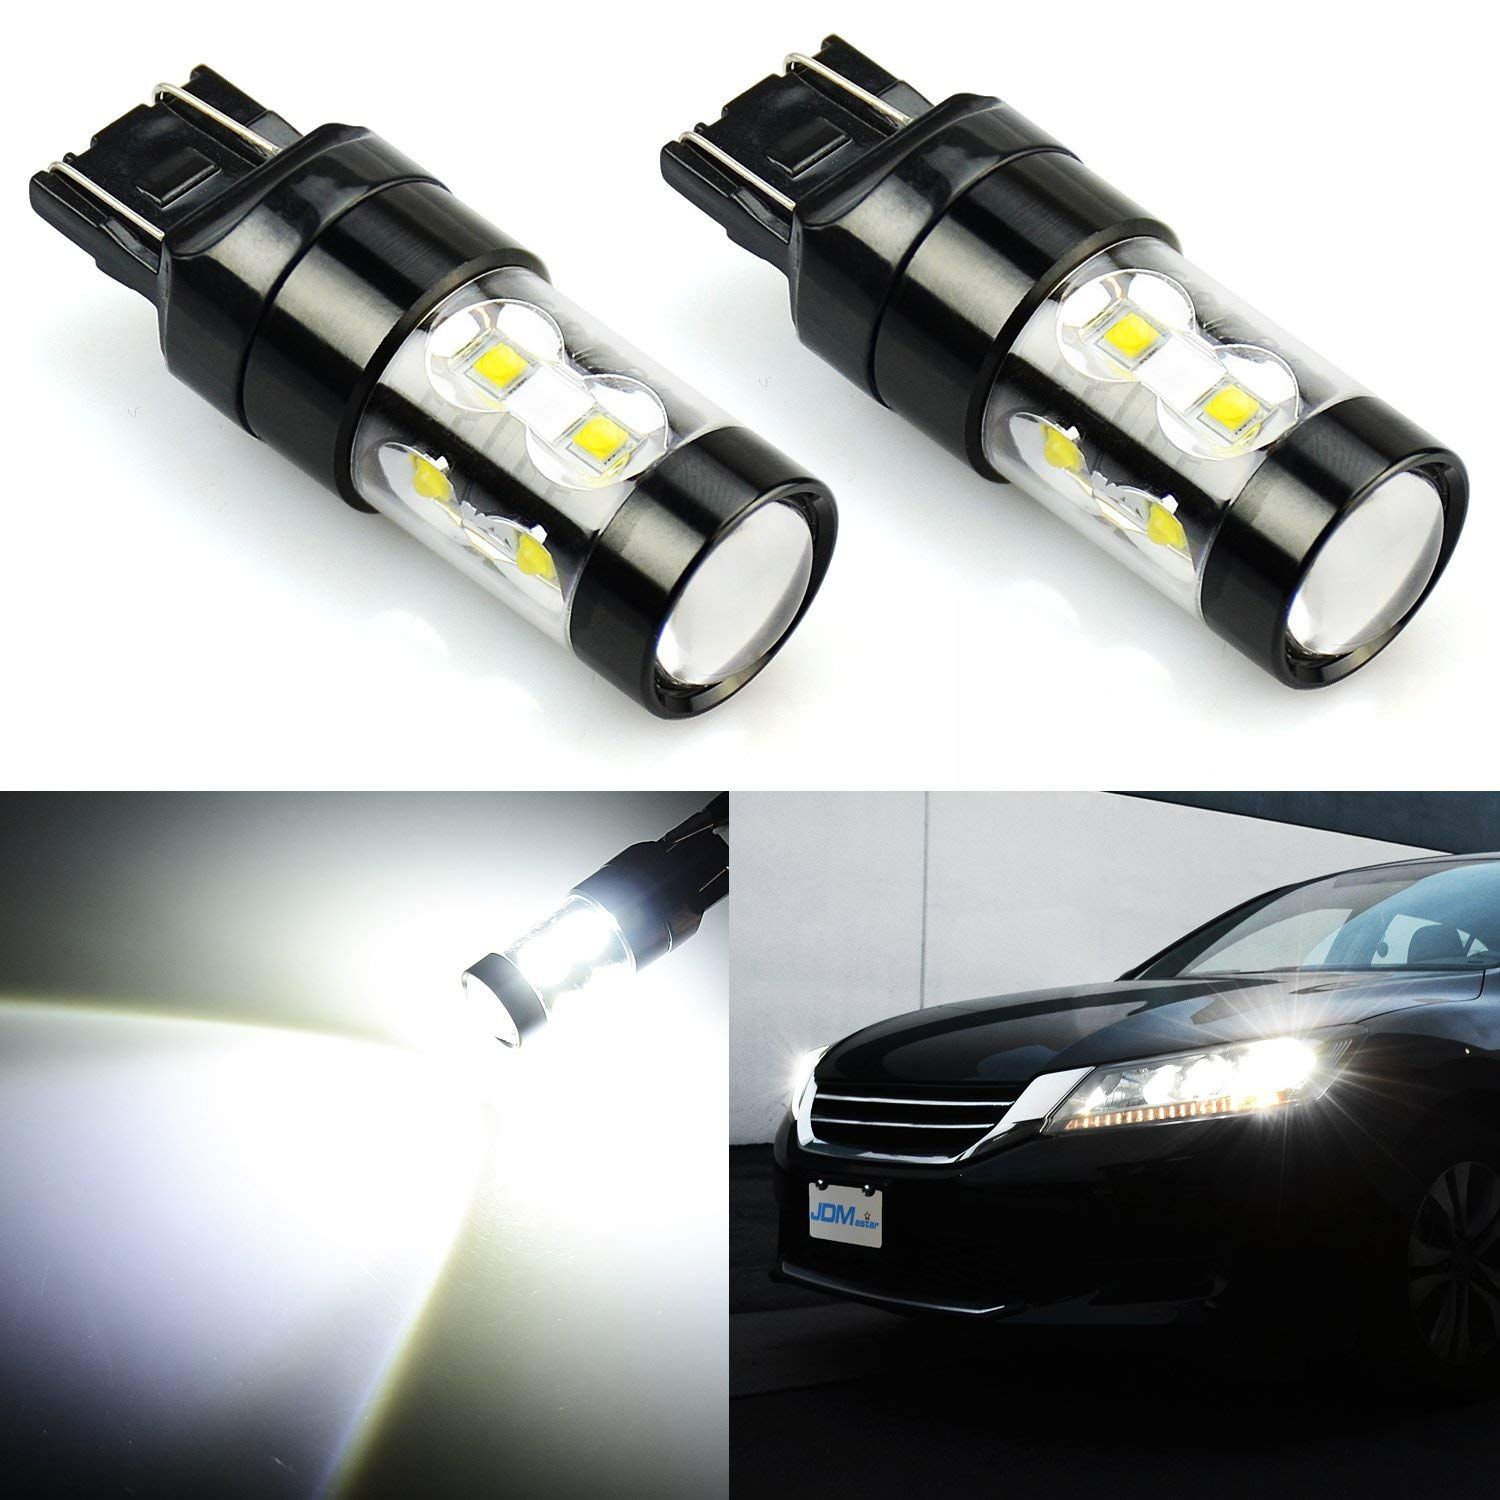 small resolution of jdm astar extremely bright max 50w high power 7444 7443 7441 7440 led fog light bulbs for back up reverse lights xenon white price 12 49